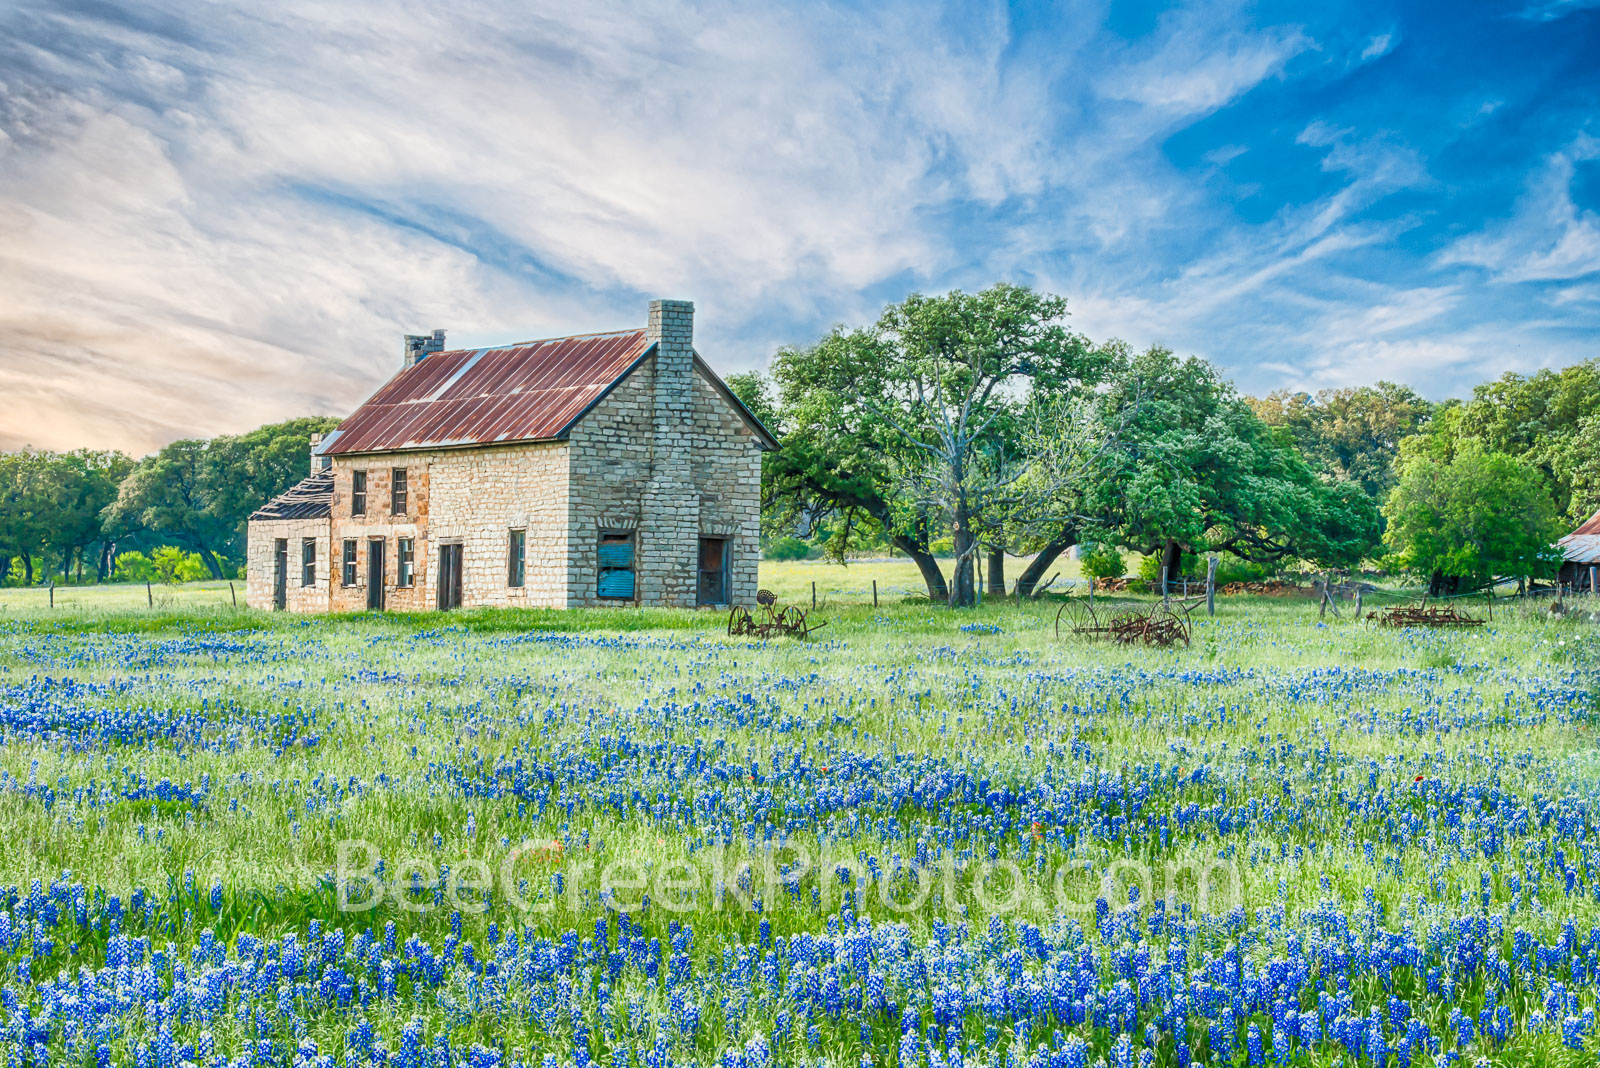 hill country bluebonnets, blue bonnets, bluebonnet, bluebonnets, dusk, bluebonnet house, farmhouse, flora, images of Texas, landscape, landscapes, scenic, spring, spring flowers, springtine, sunset, t, photo